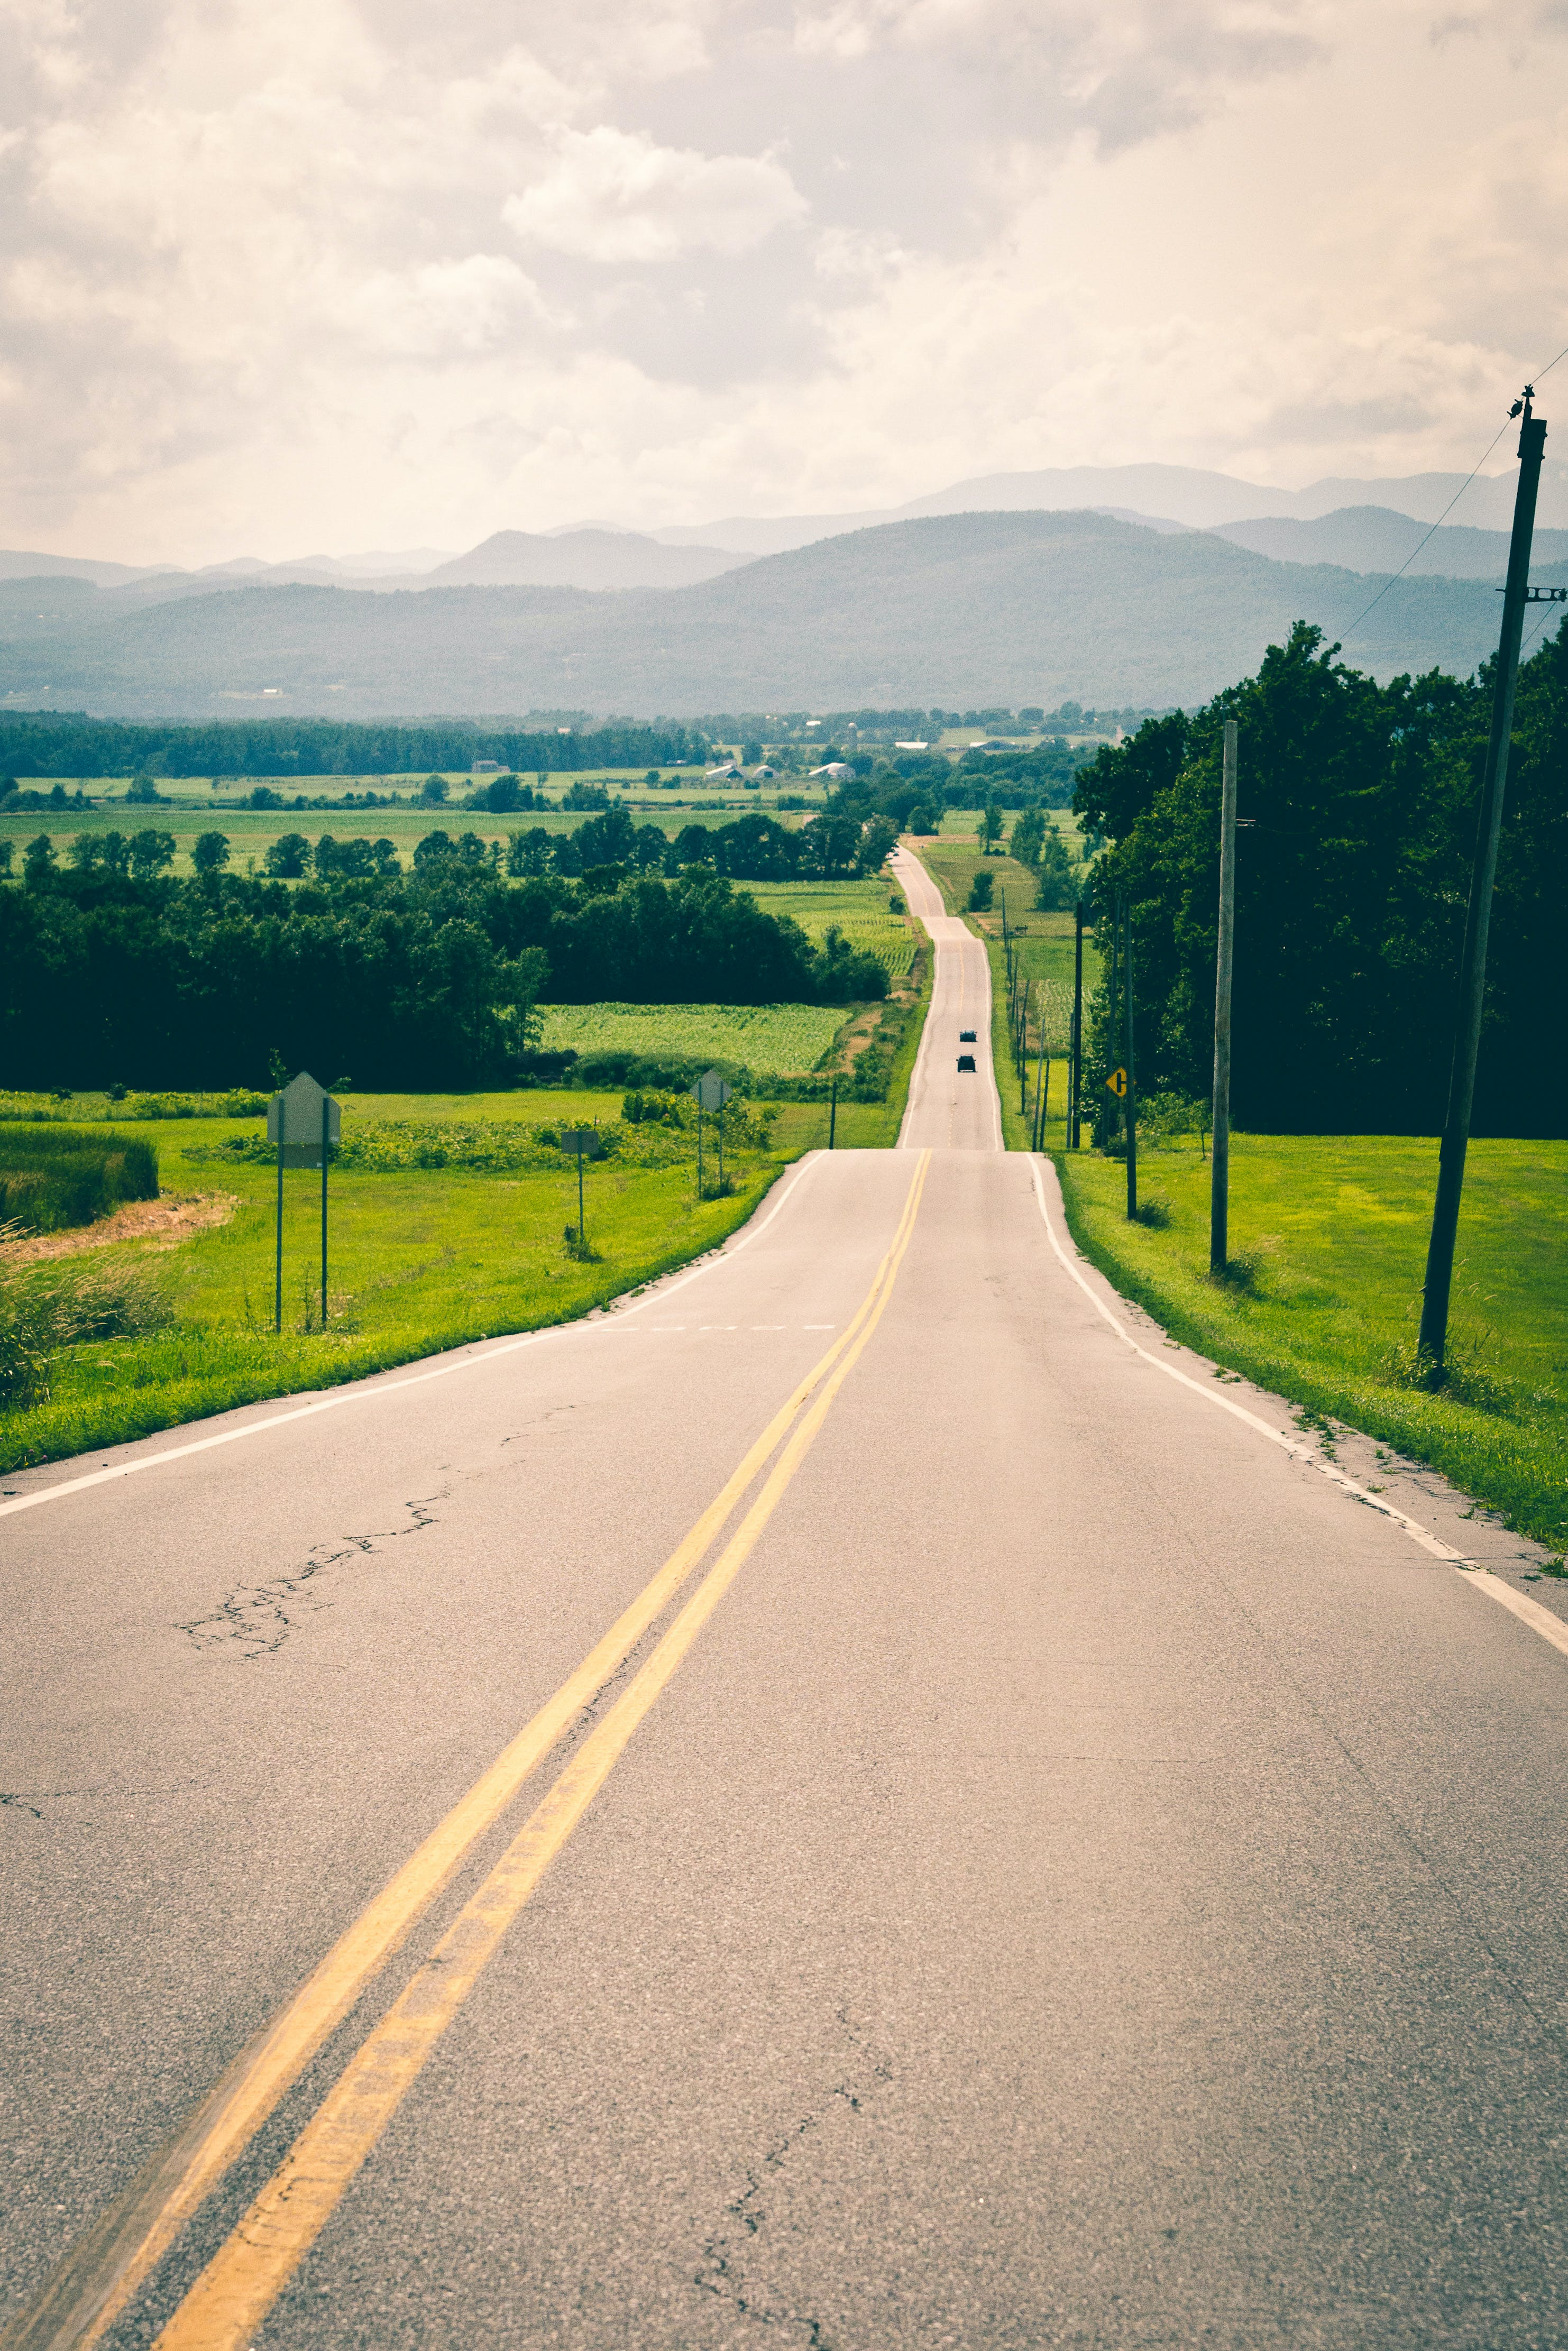 Long Road Under Cloudy Sky